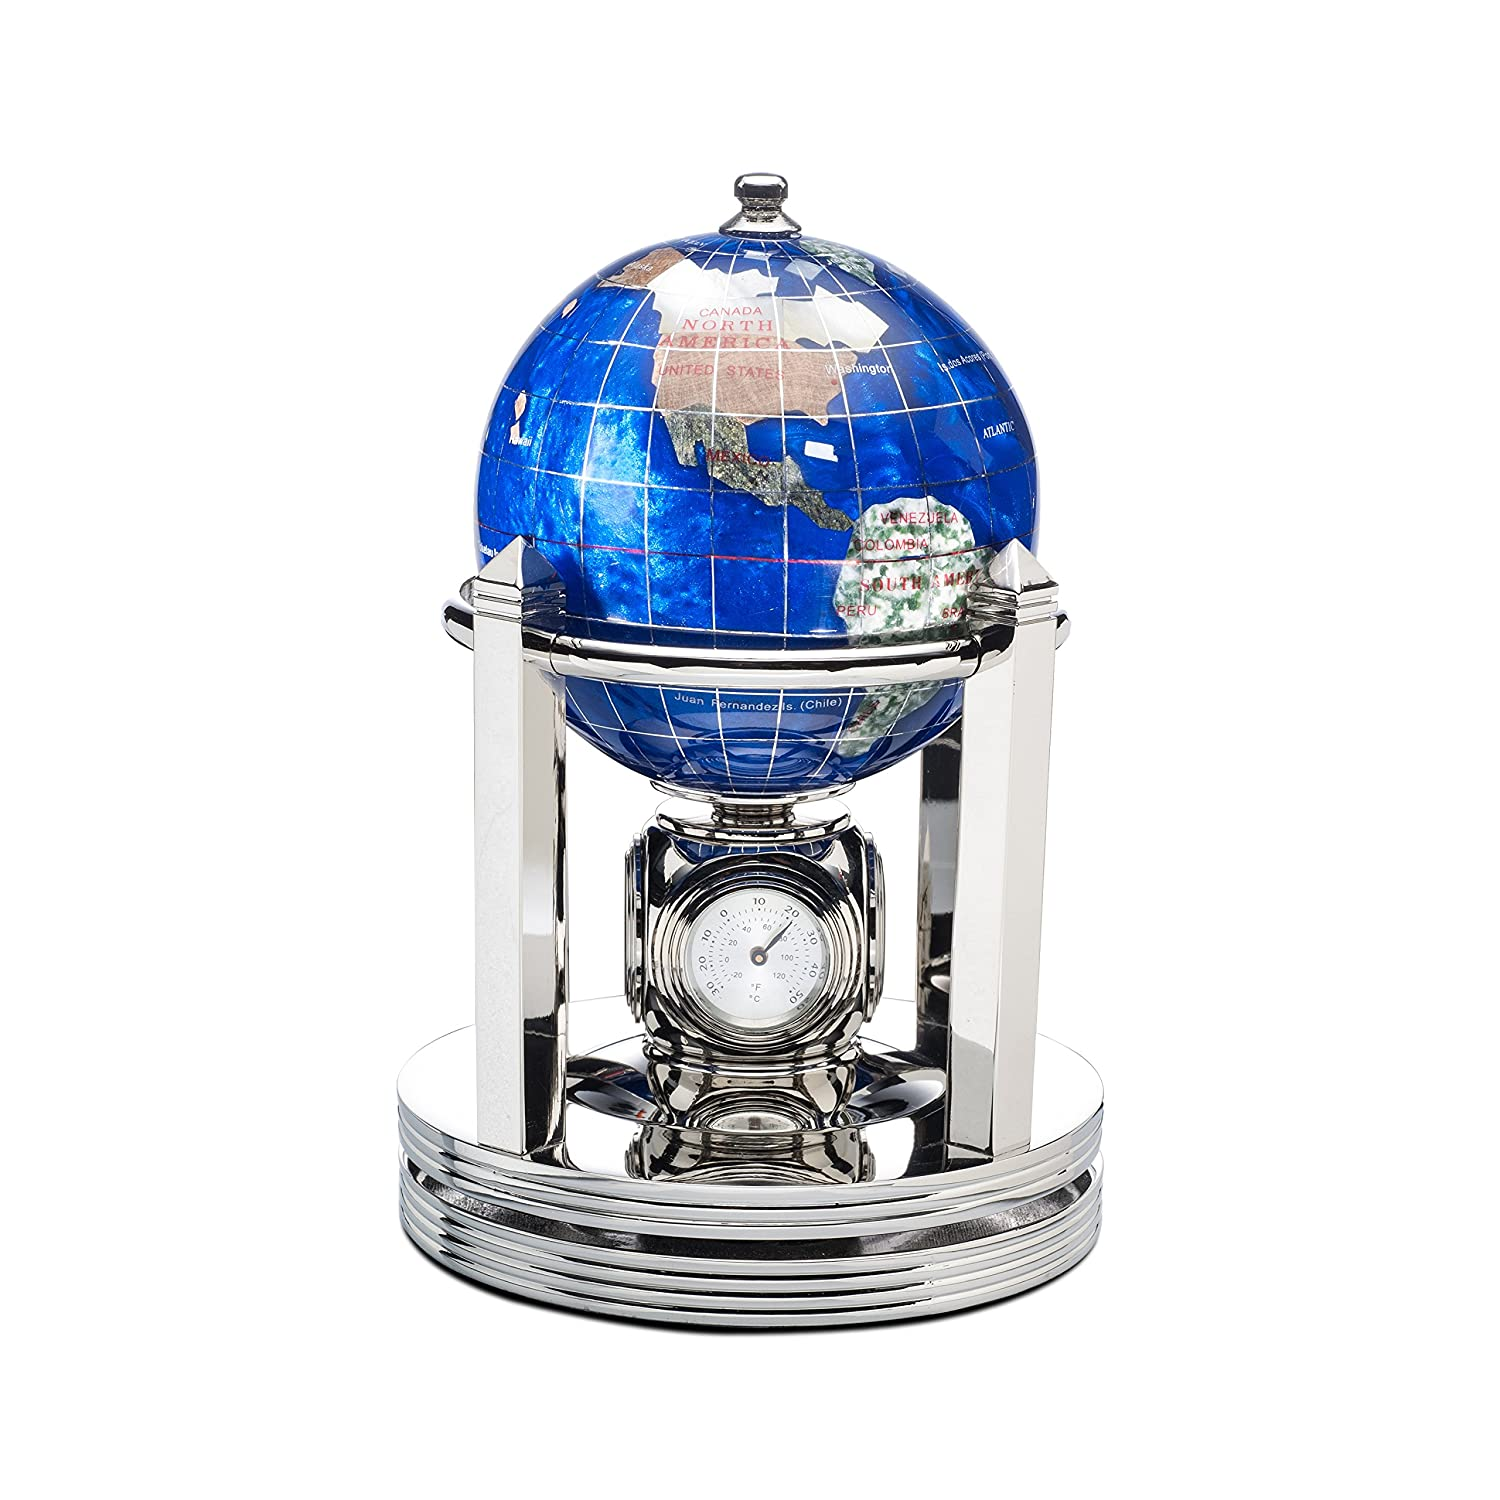 Kalifano Caribbean Blue 3-in. Gemstone Globe and Bright Silver Galleon Rotating Base - Clock, 2 thermometers, and a hygrometer